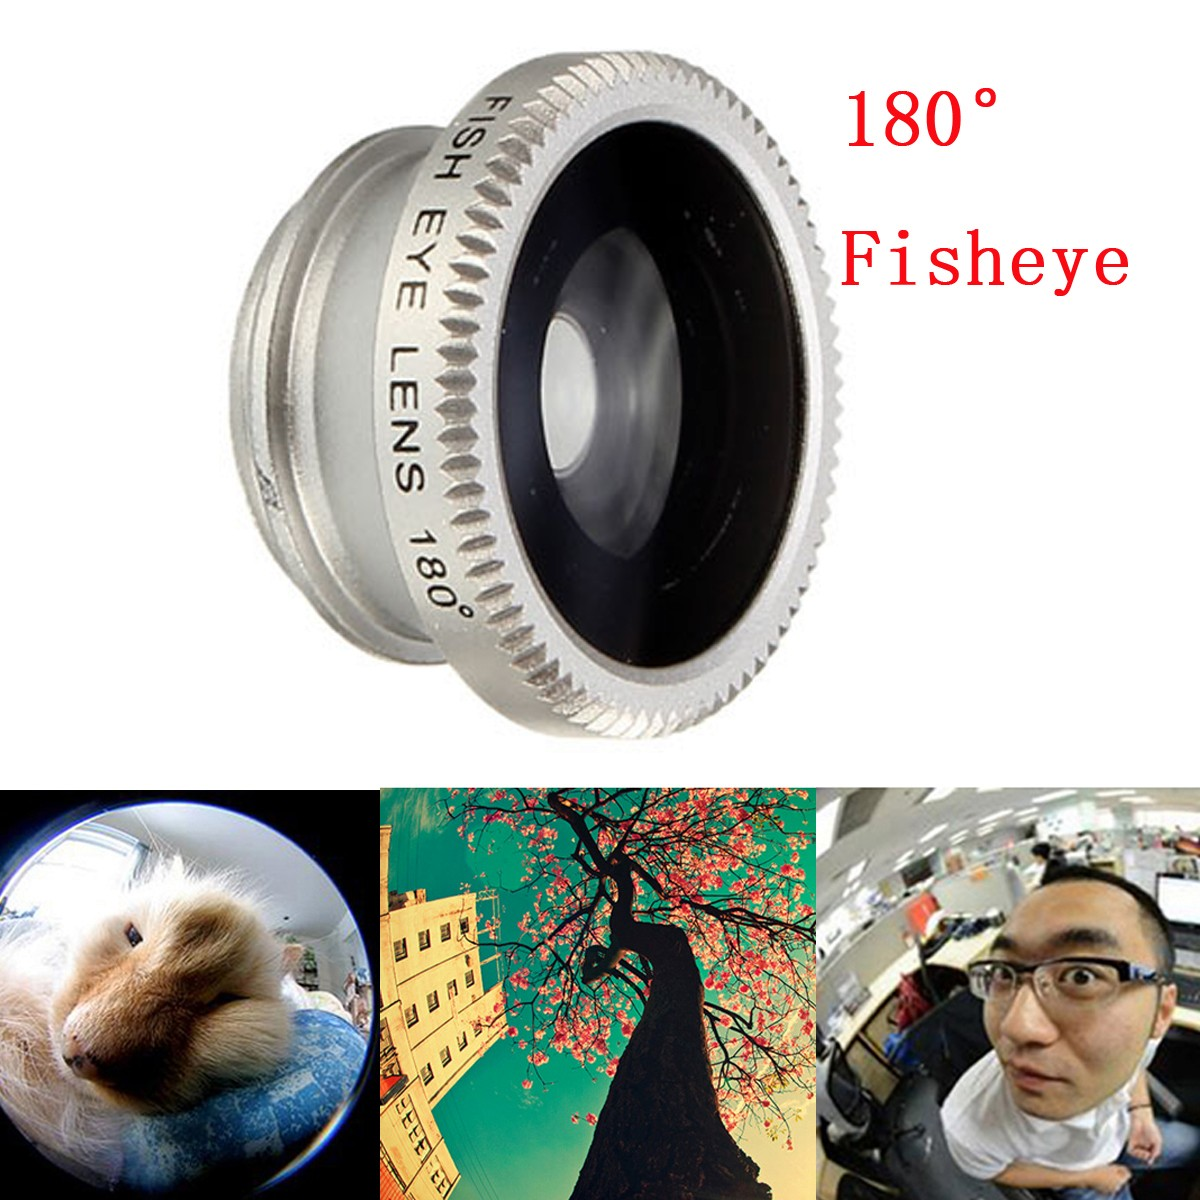 5in1 Clip Fisheye Wide Angle Macro CPL Filter Lens Teleconverter For iPhone 6 Plus Smartphone